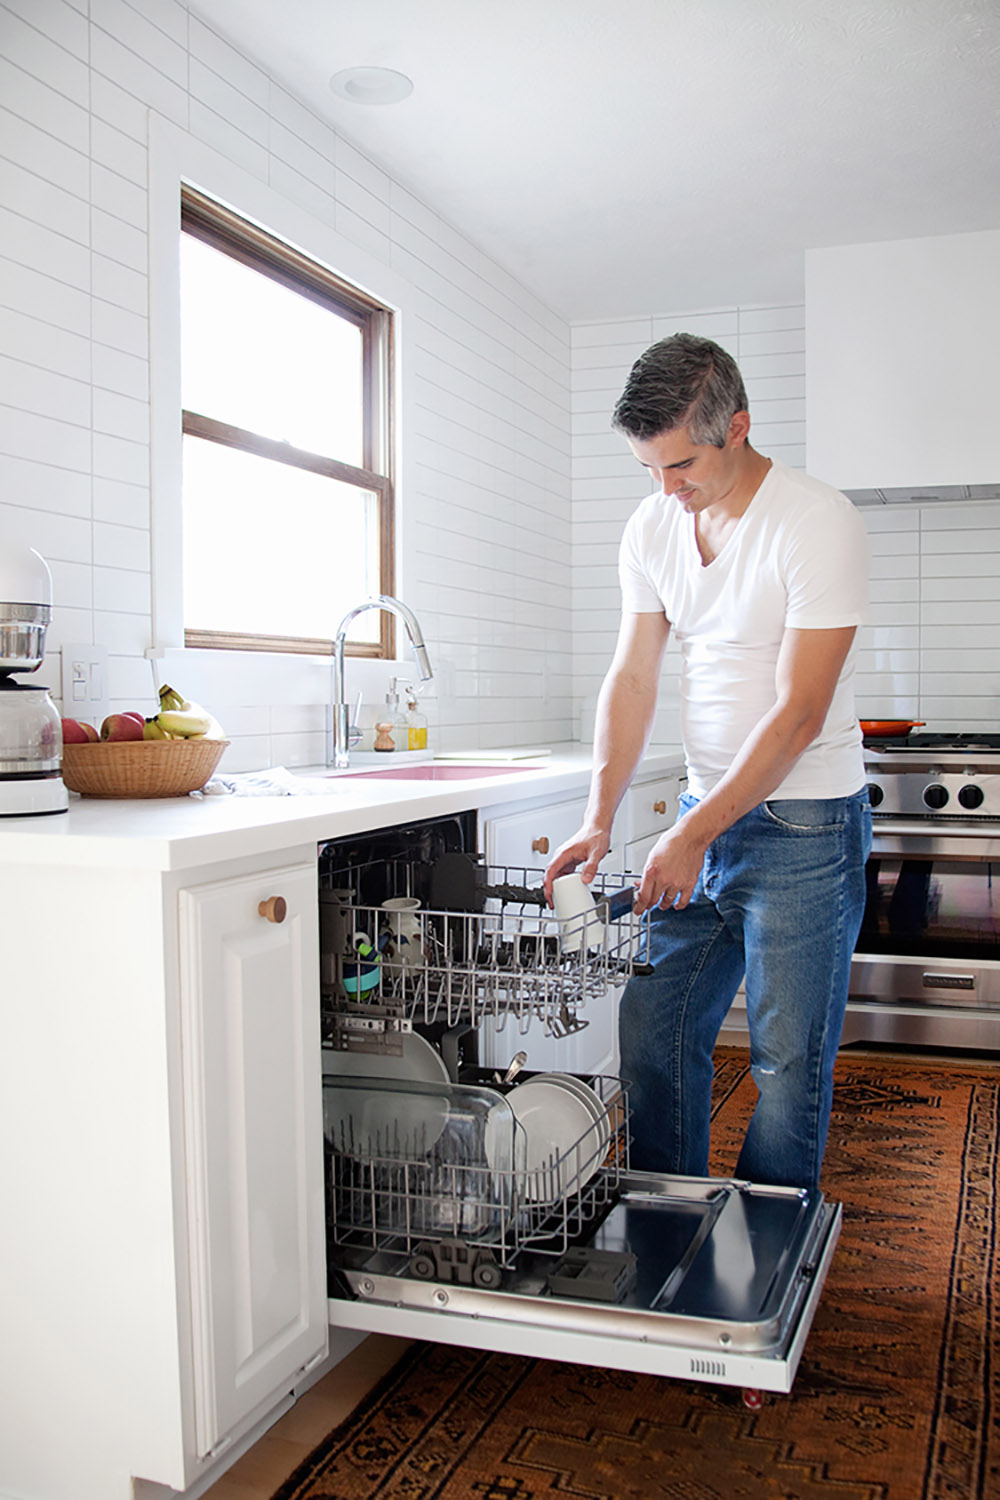 A man adds a cup to the top rack of a dishwasher.